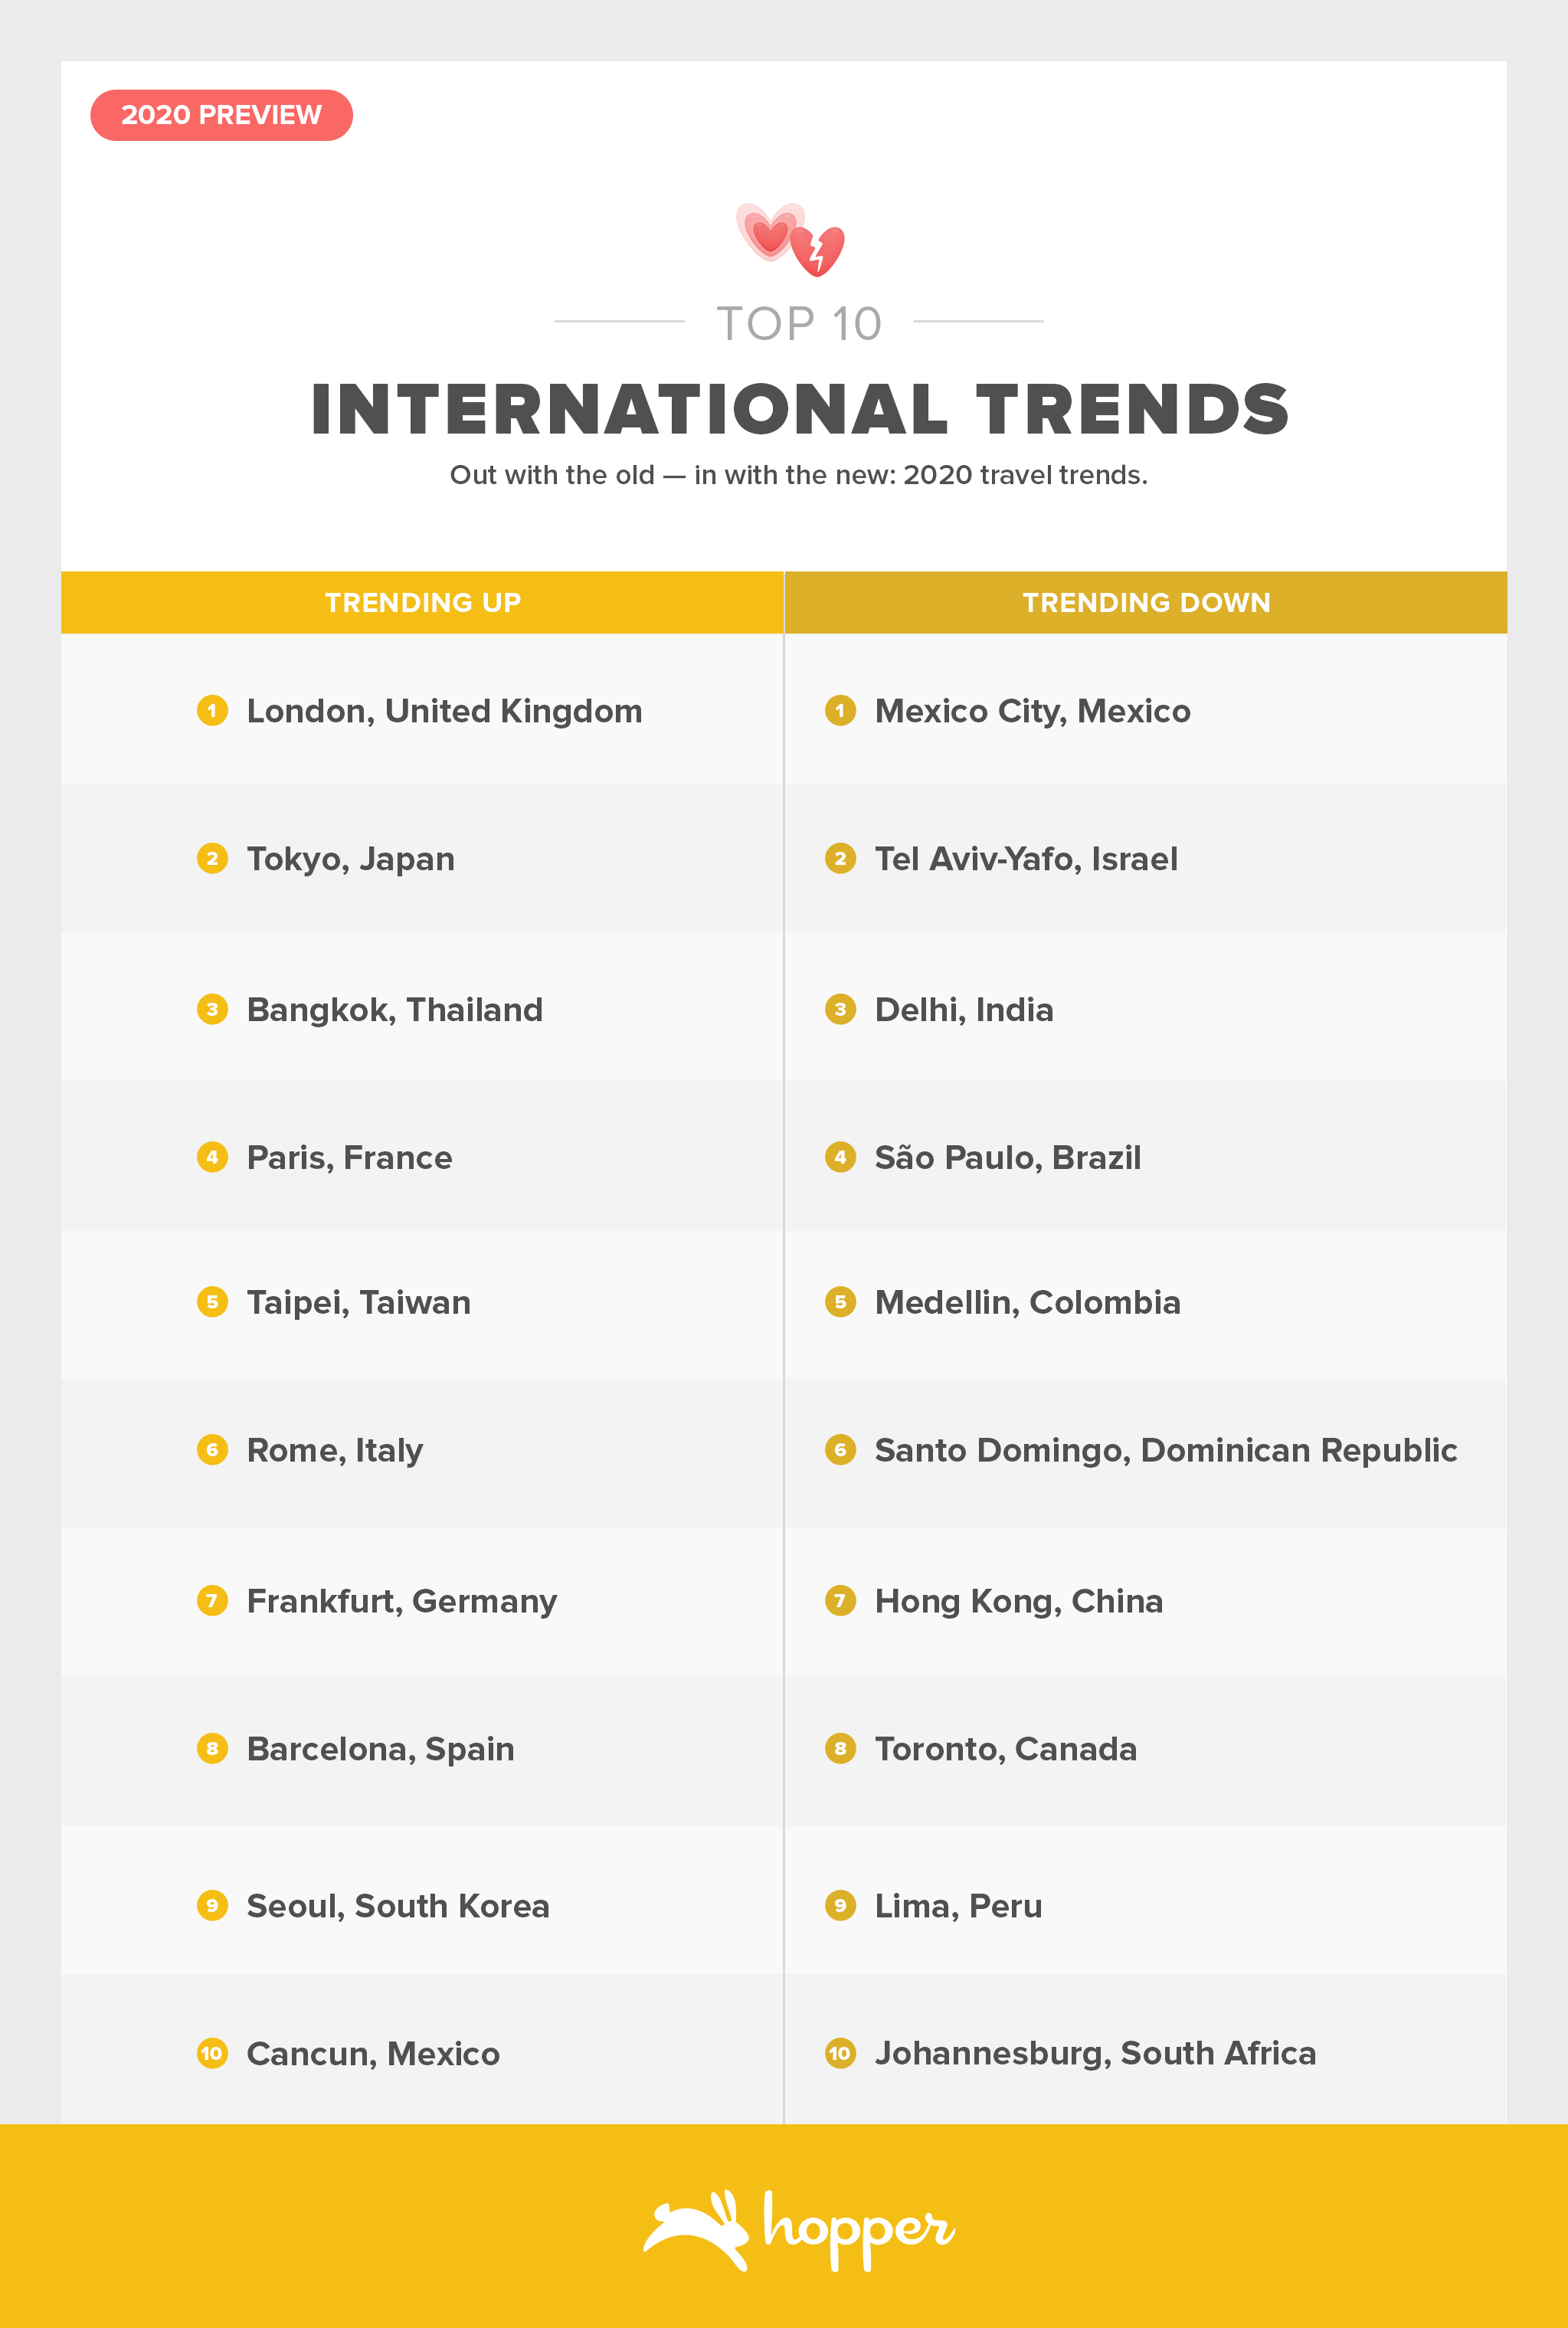 2019-in-Review-2020-ExpectationsInternational Trends (1)